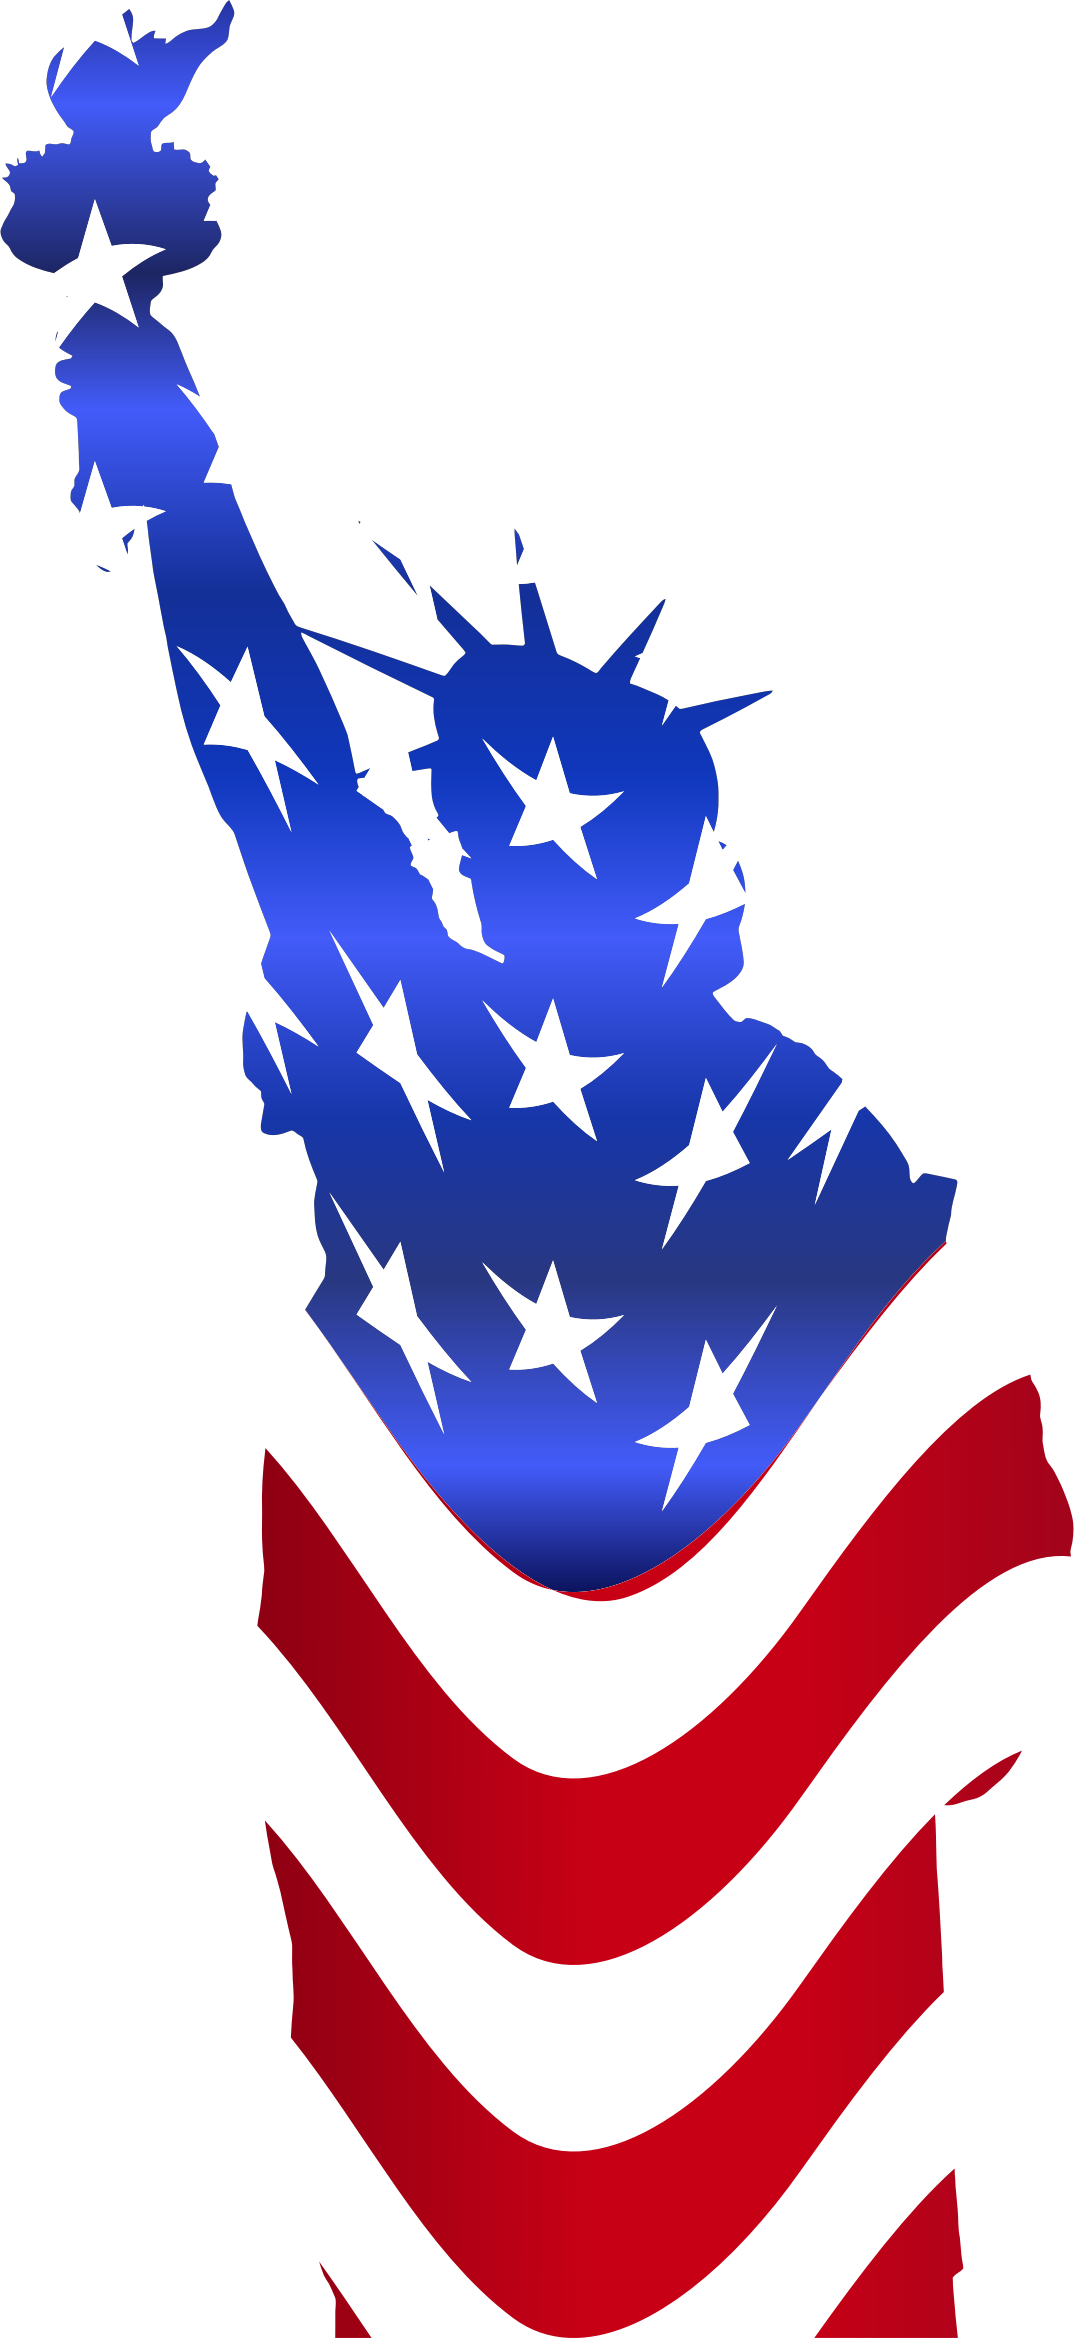 Statue of liberty flag. United states clipart blue